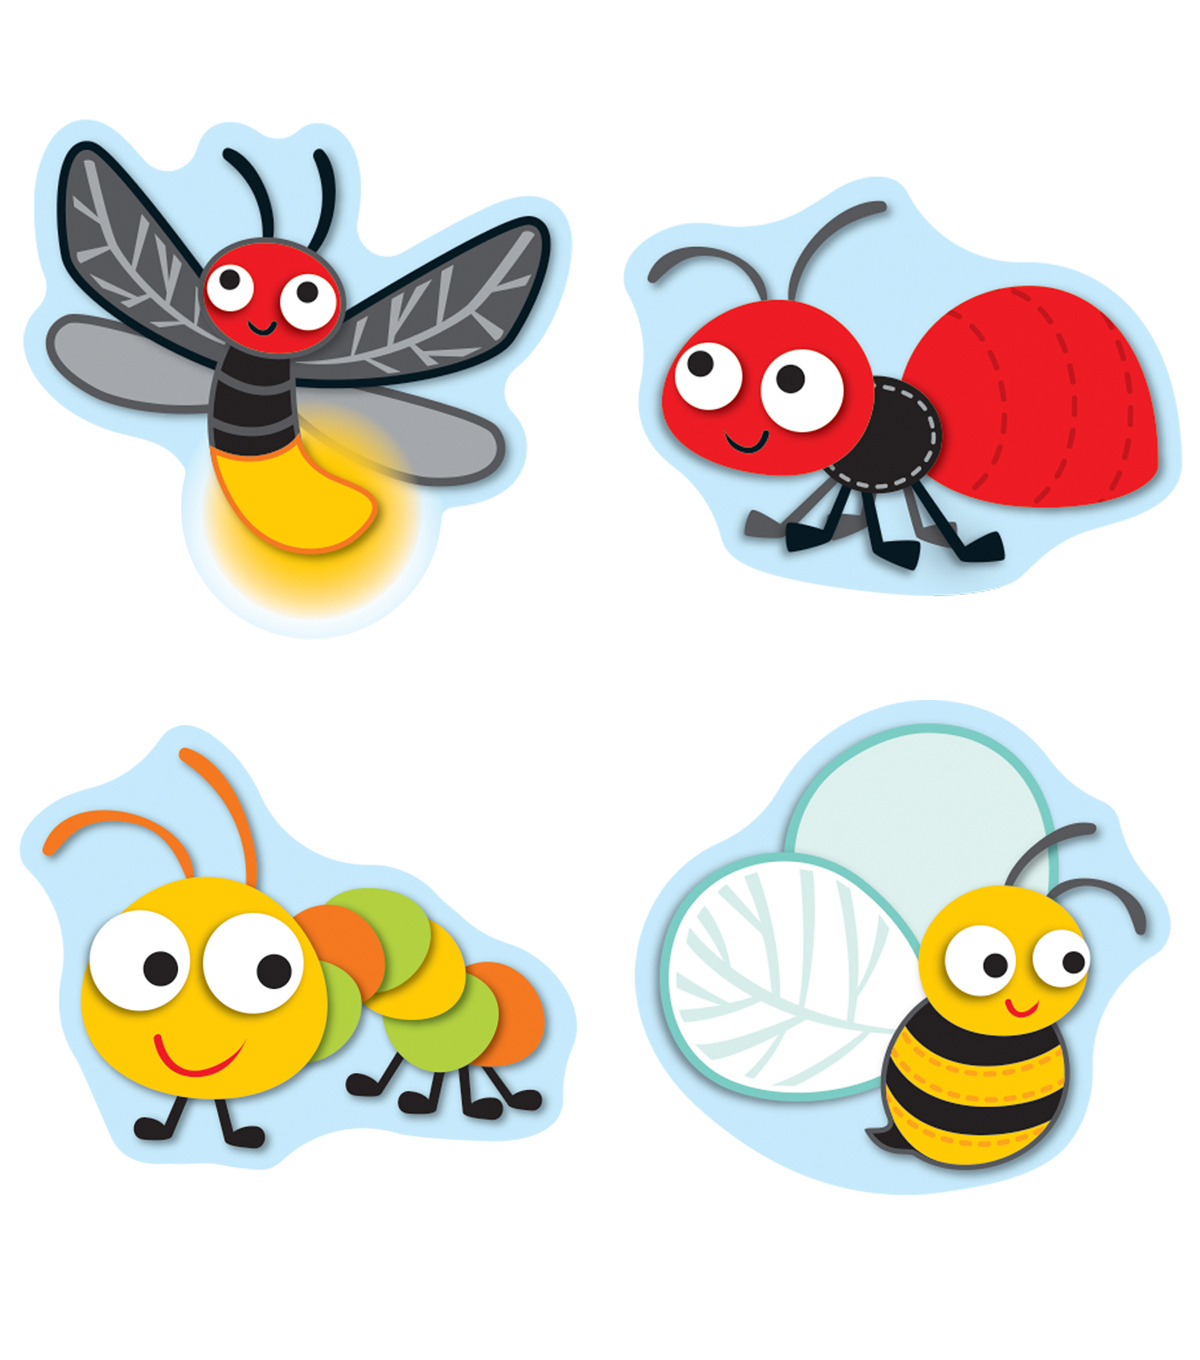 Carson Dellosa Buggy for Bugs Shape Stickers 12 Packs